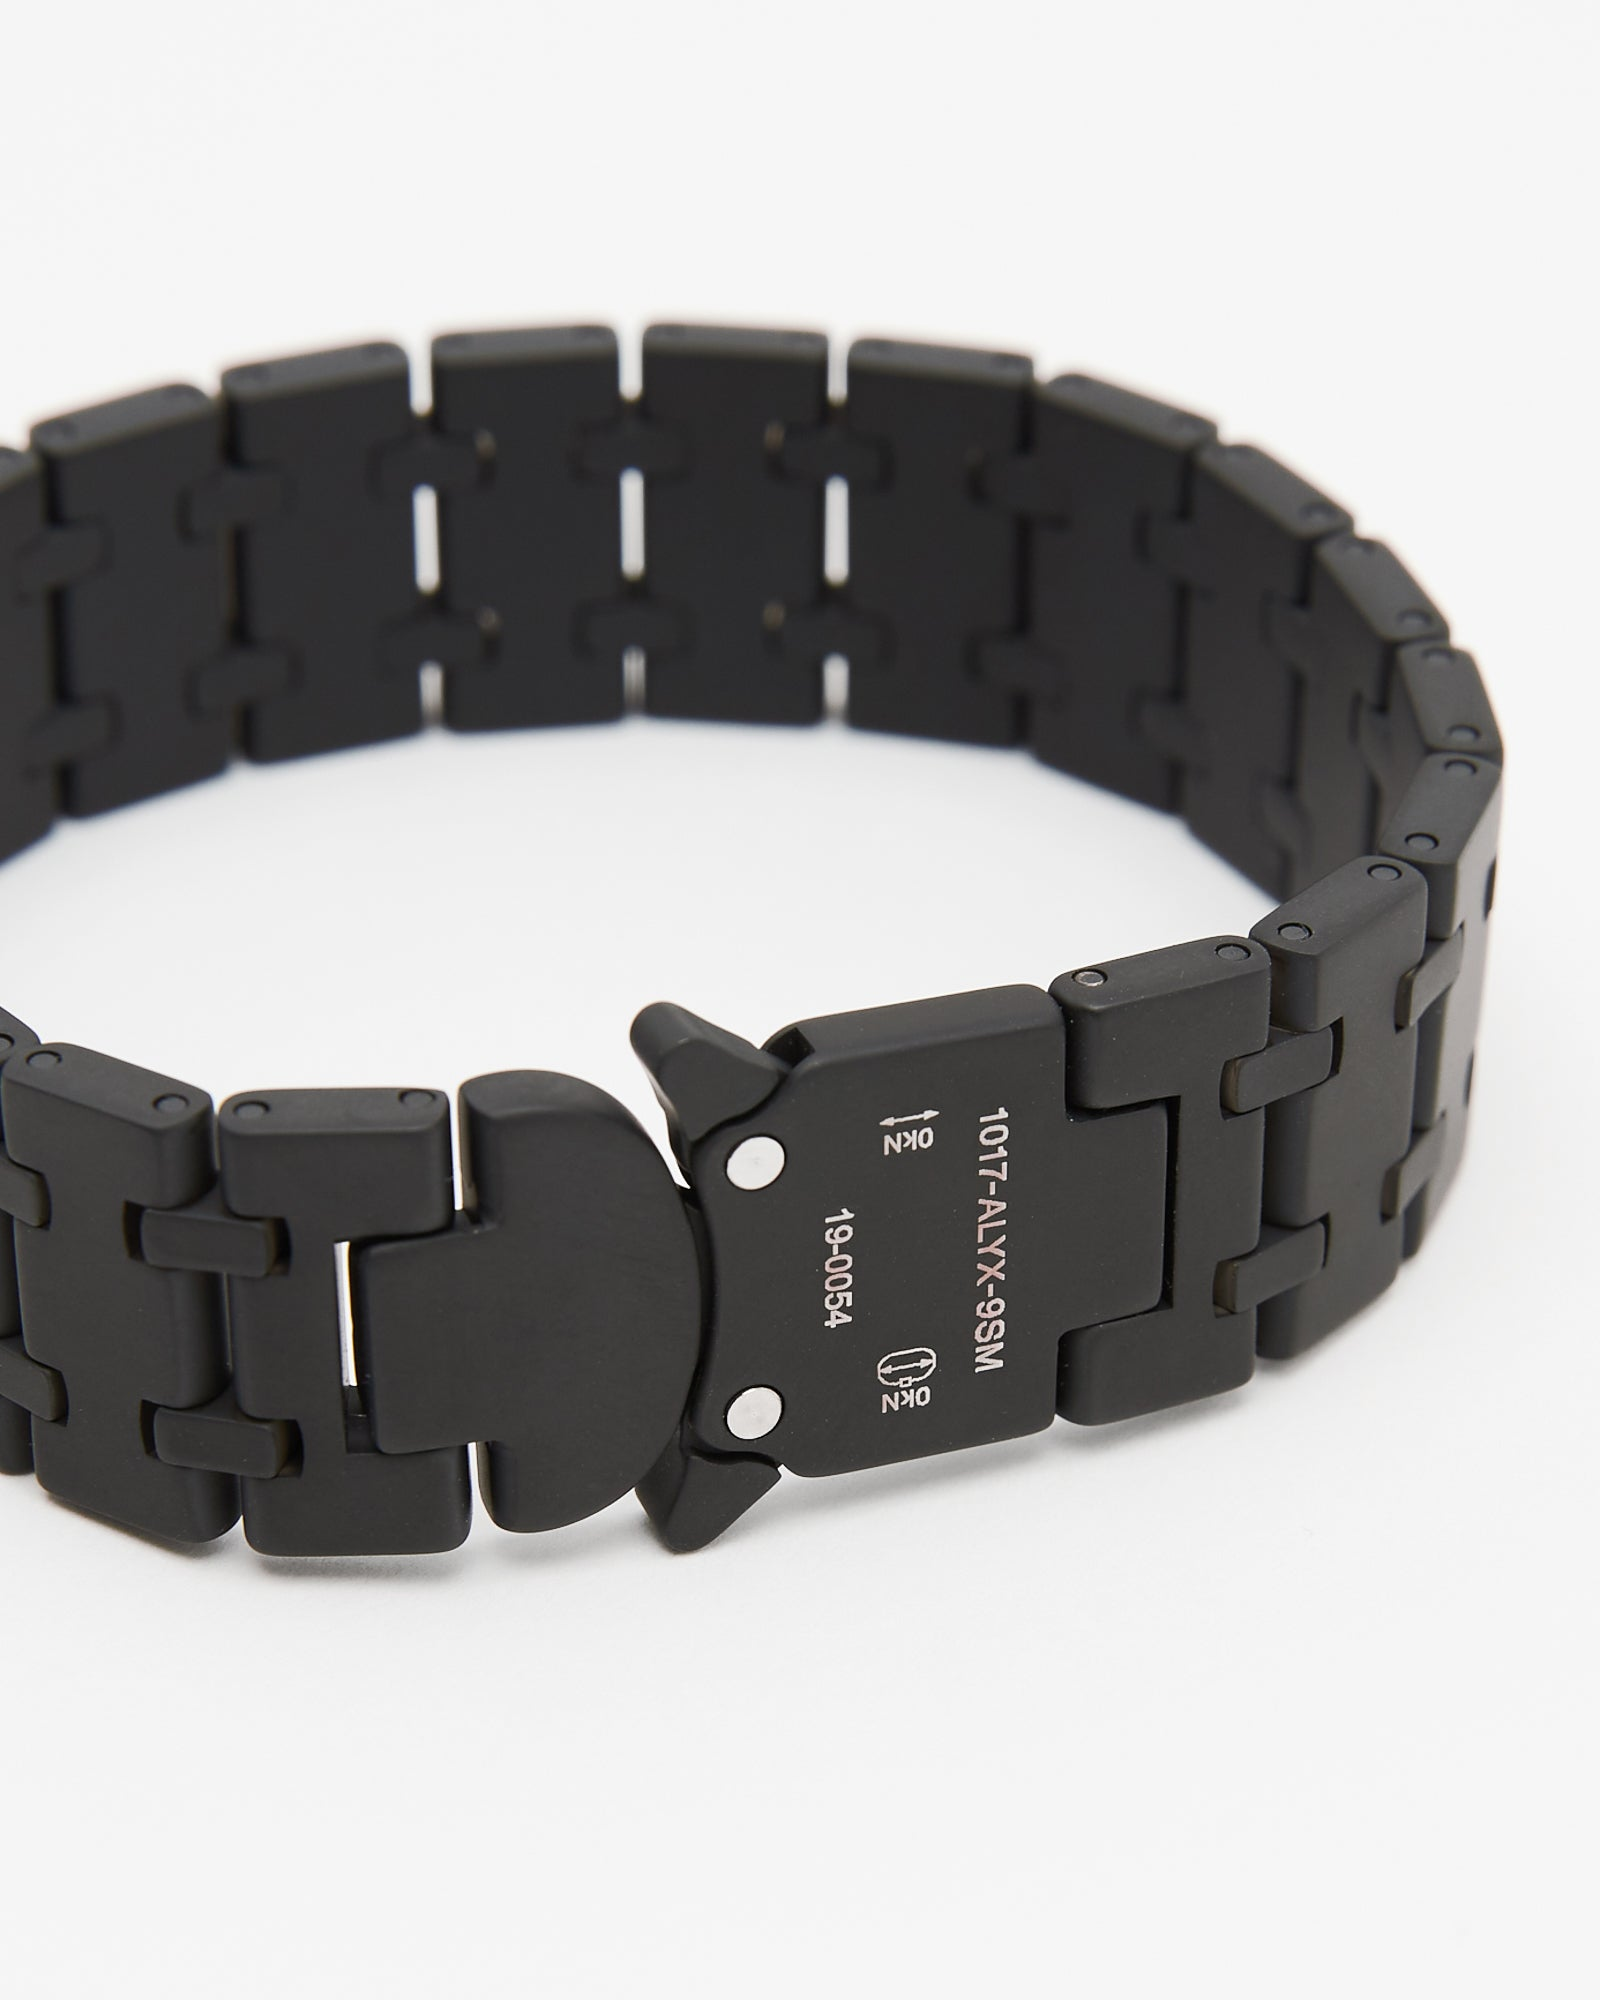 Royal Oak Bracelet in Black